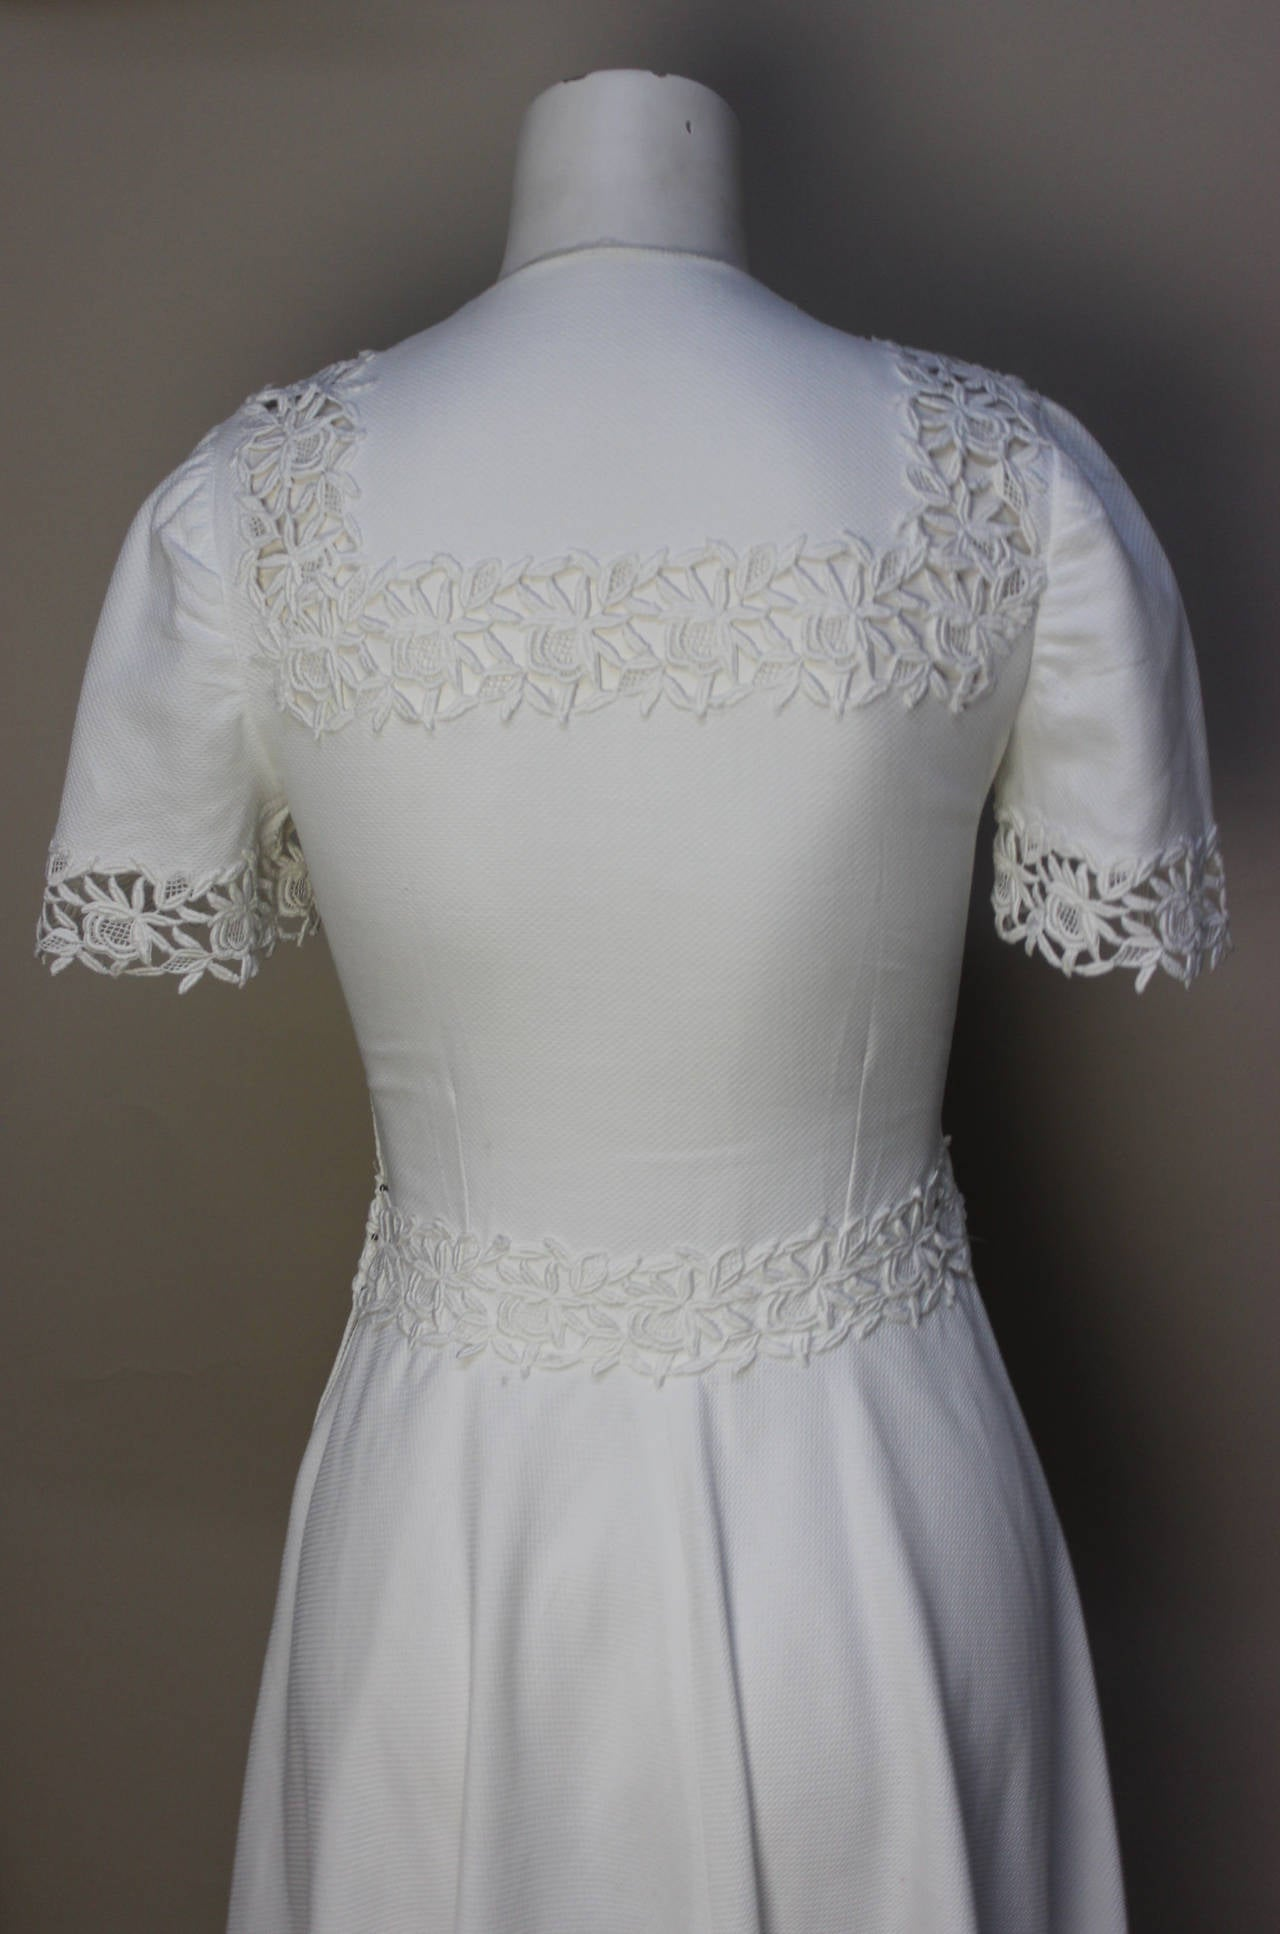 1940s/1950s Lawn Party White Pique Dress In Excellent Condition For Sale In New York, NY